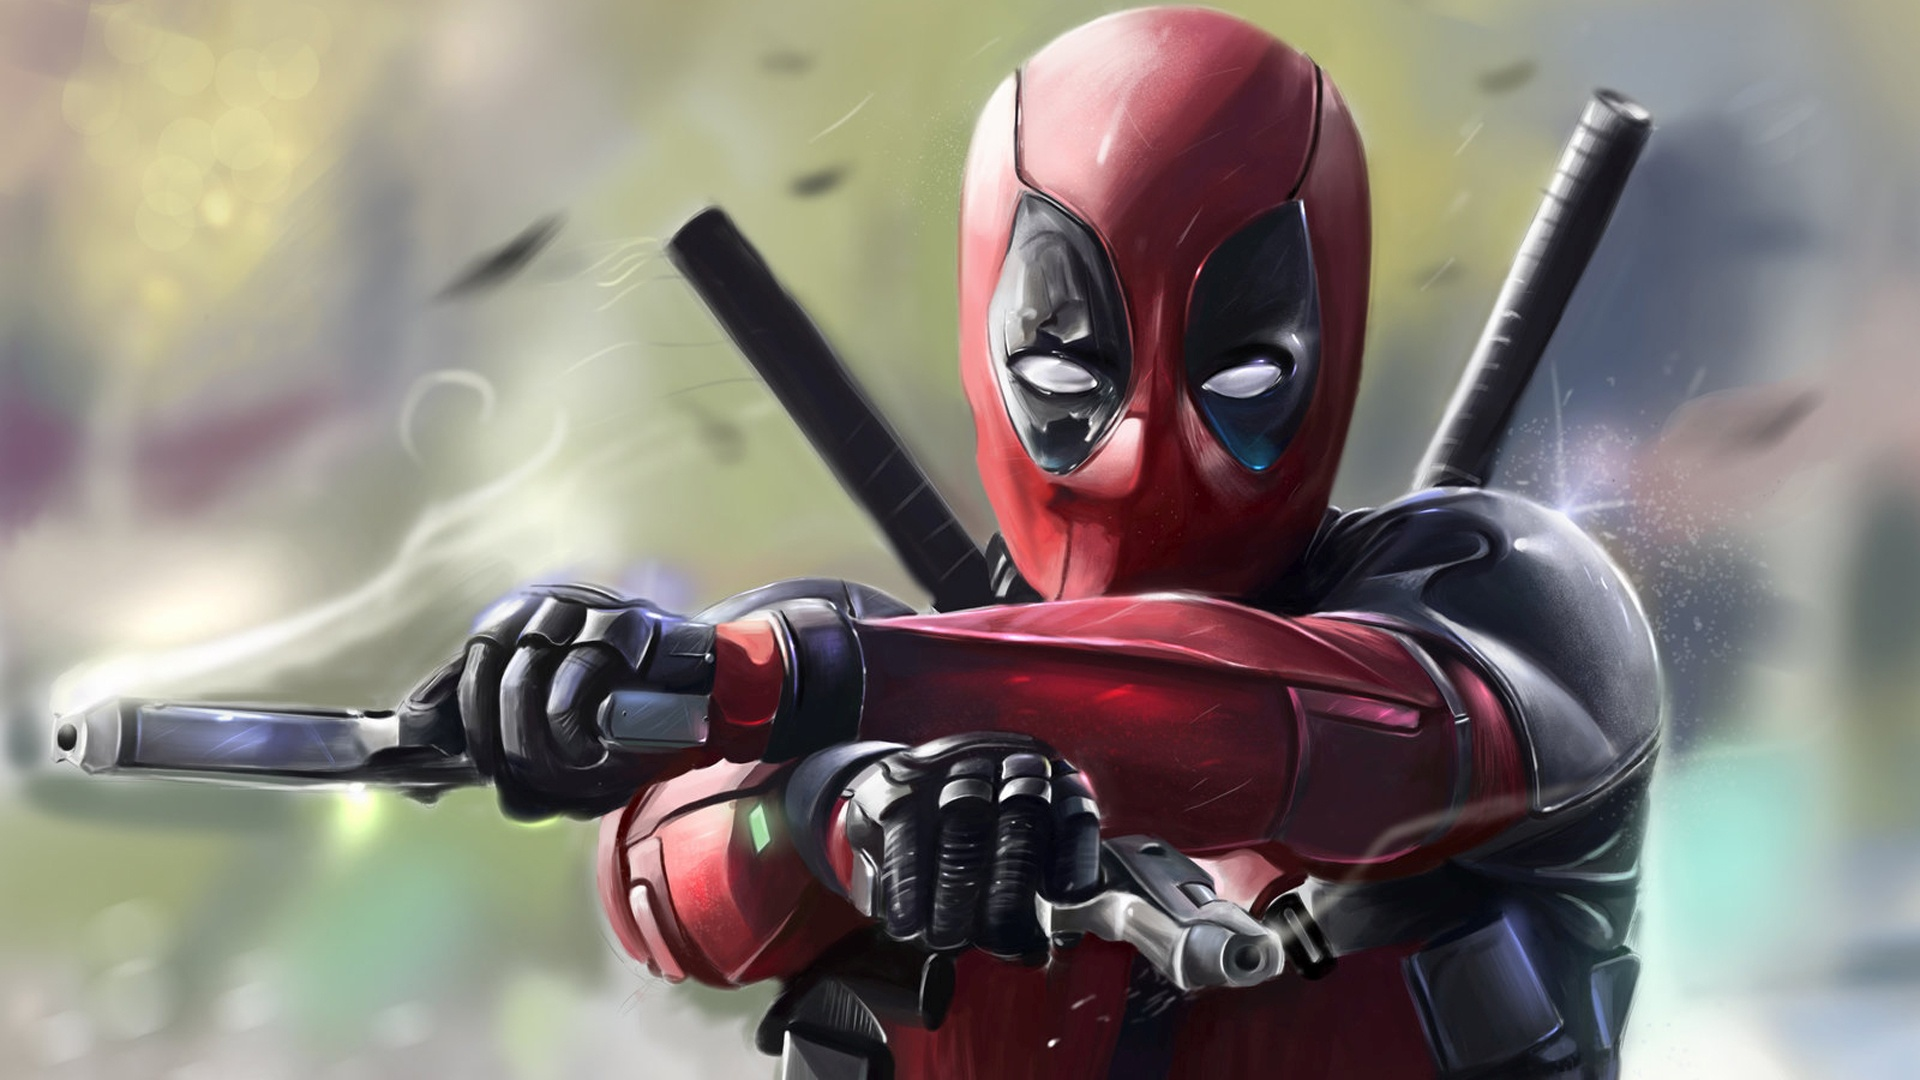 Deadpool Wallpaper Hd 1920x1080